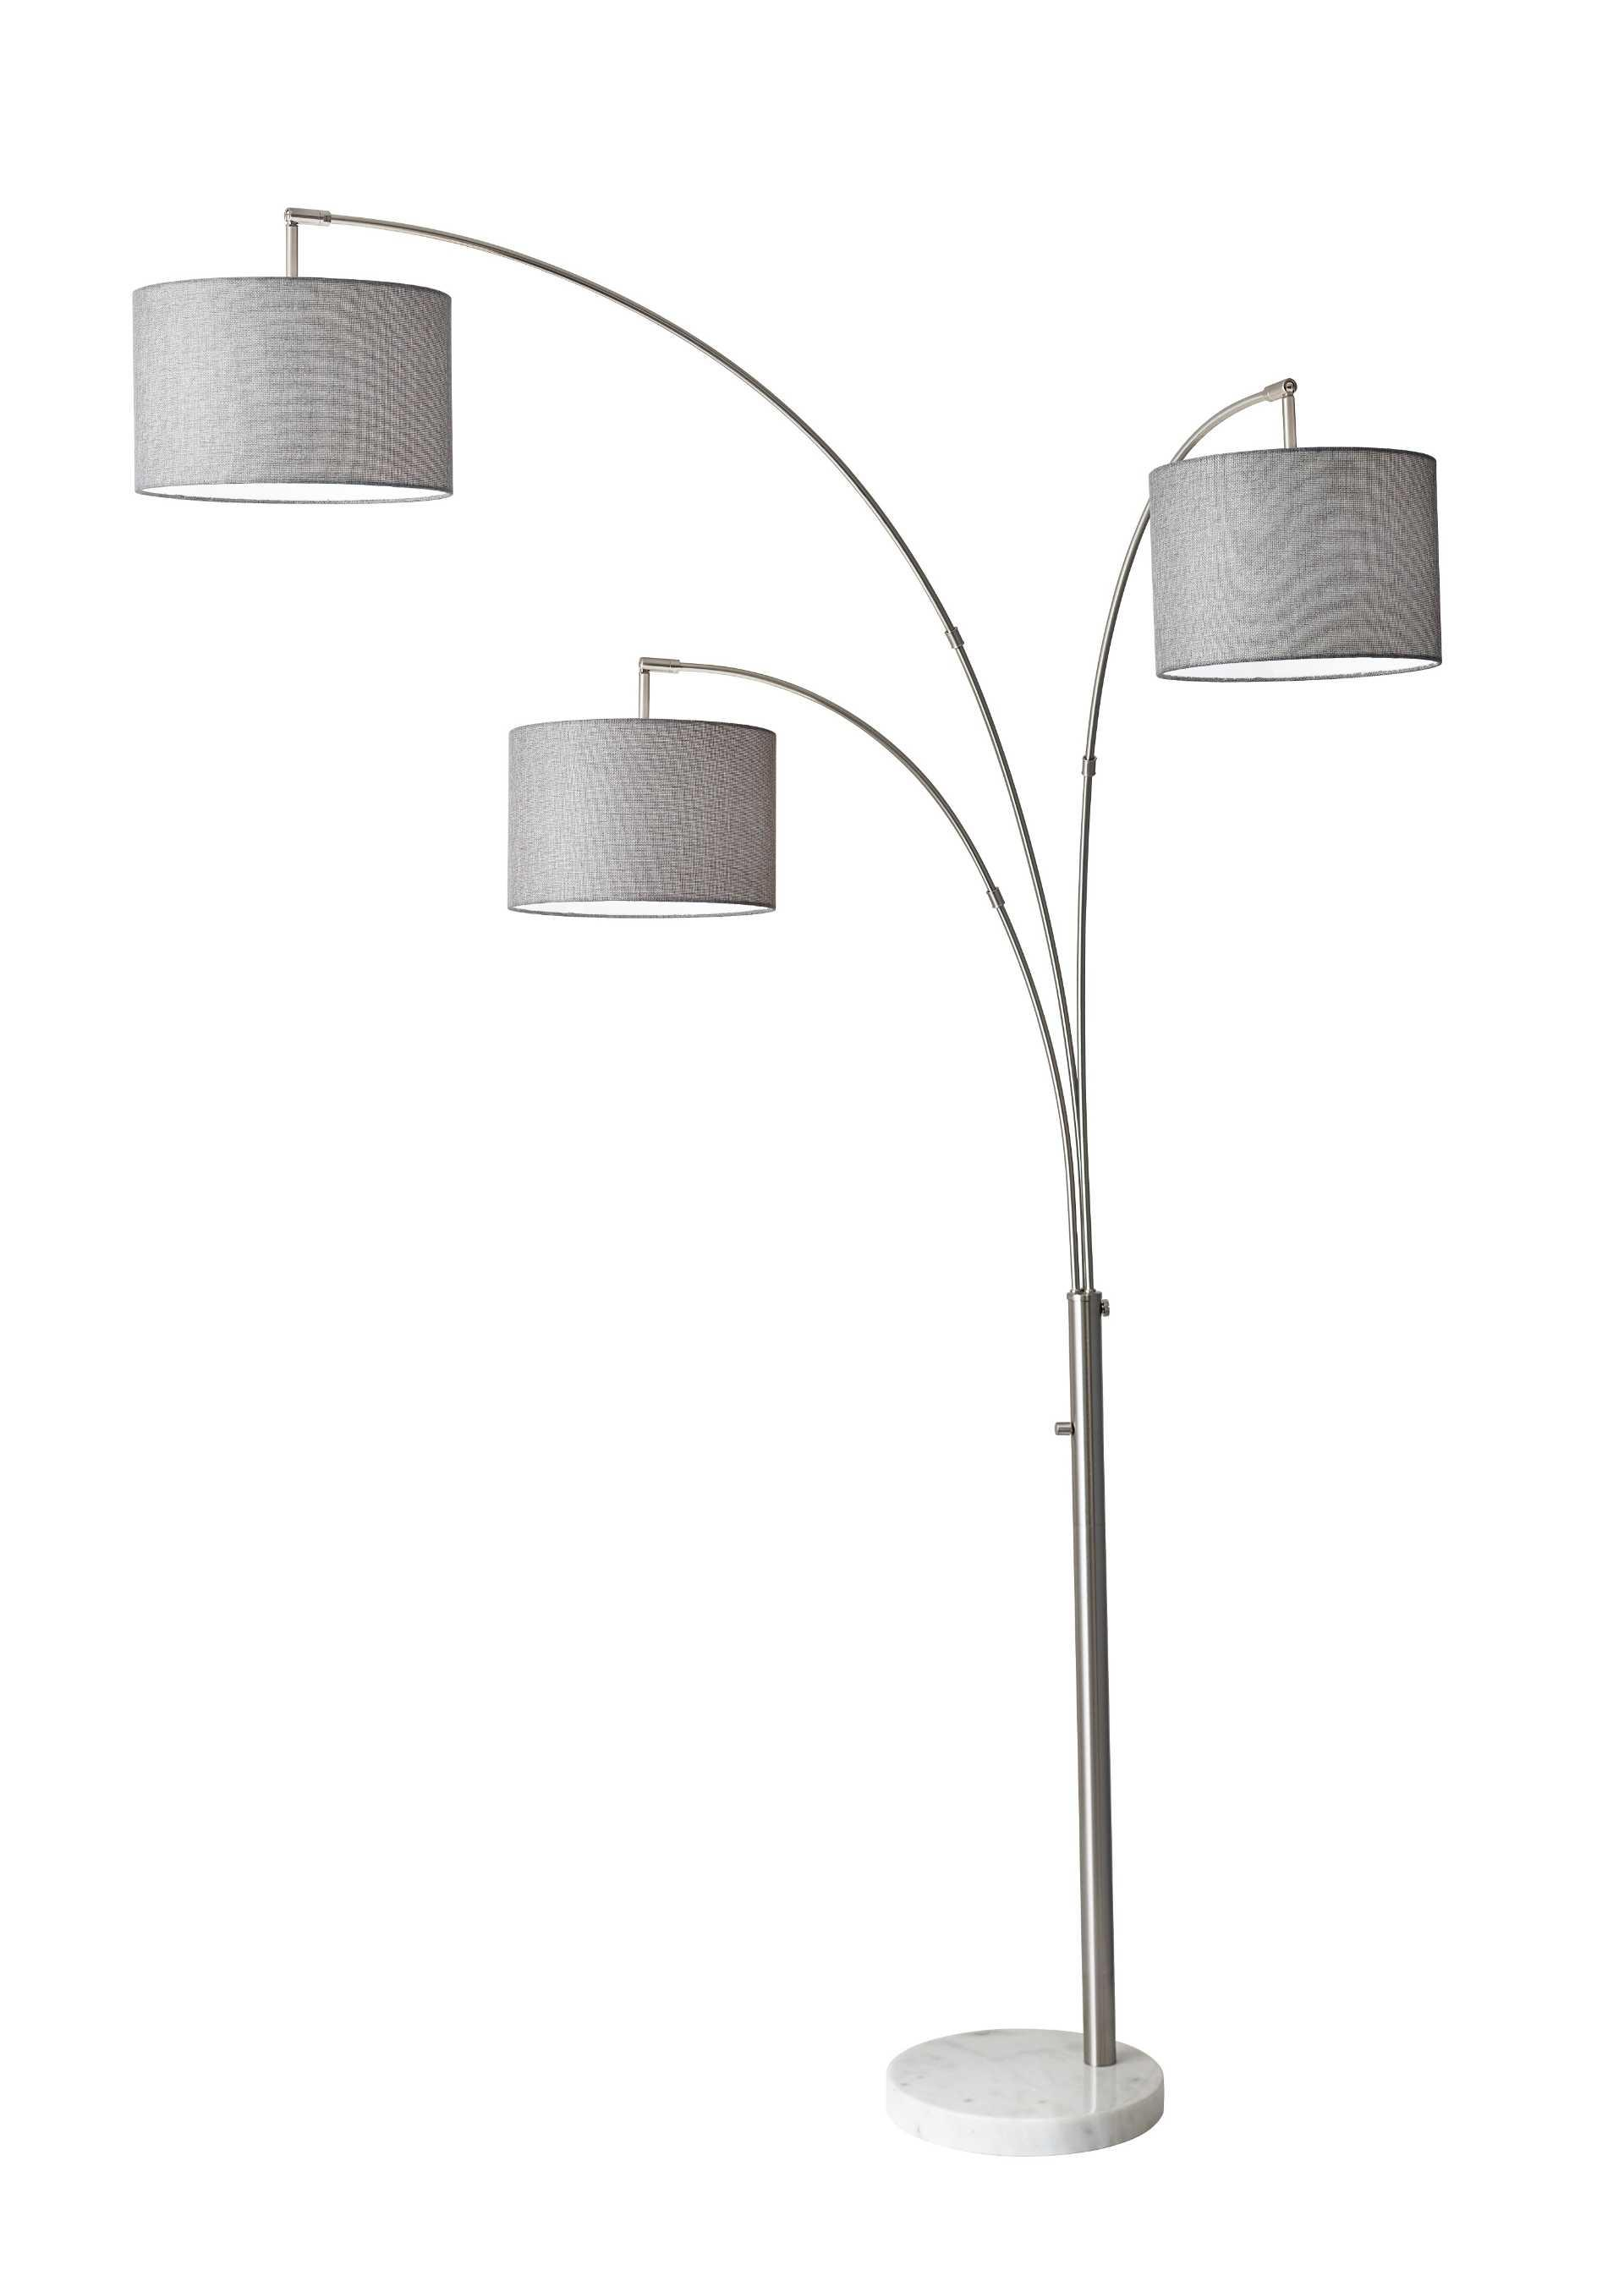 Bowery 3 Arm Arc Floor Lamp By Adesso Home